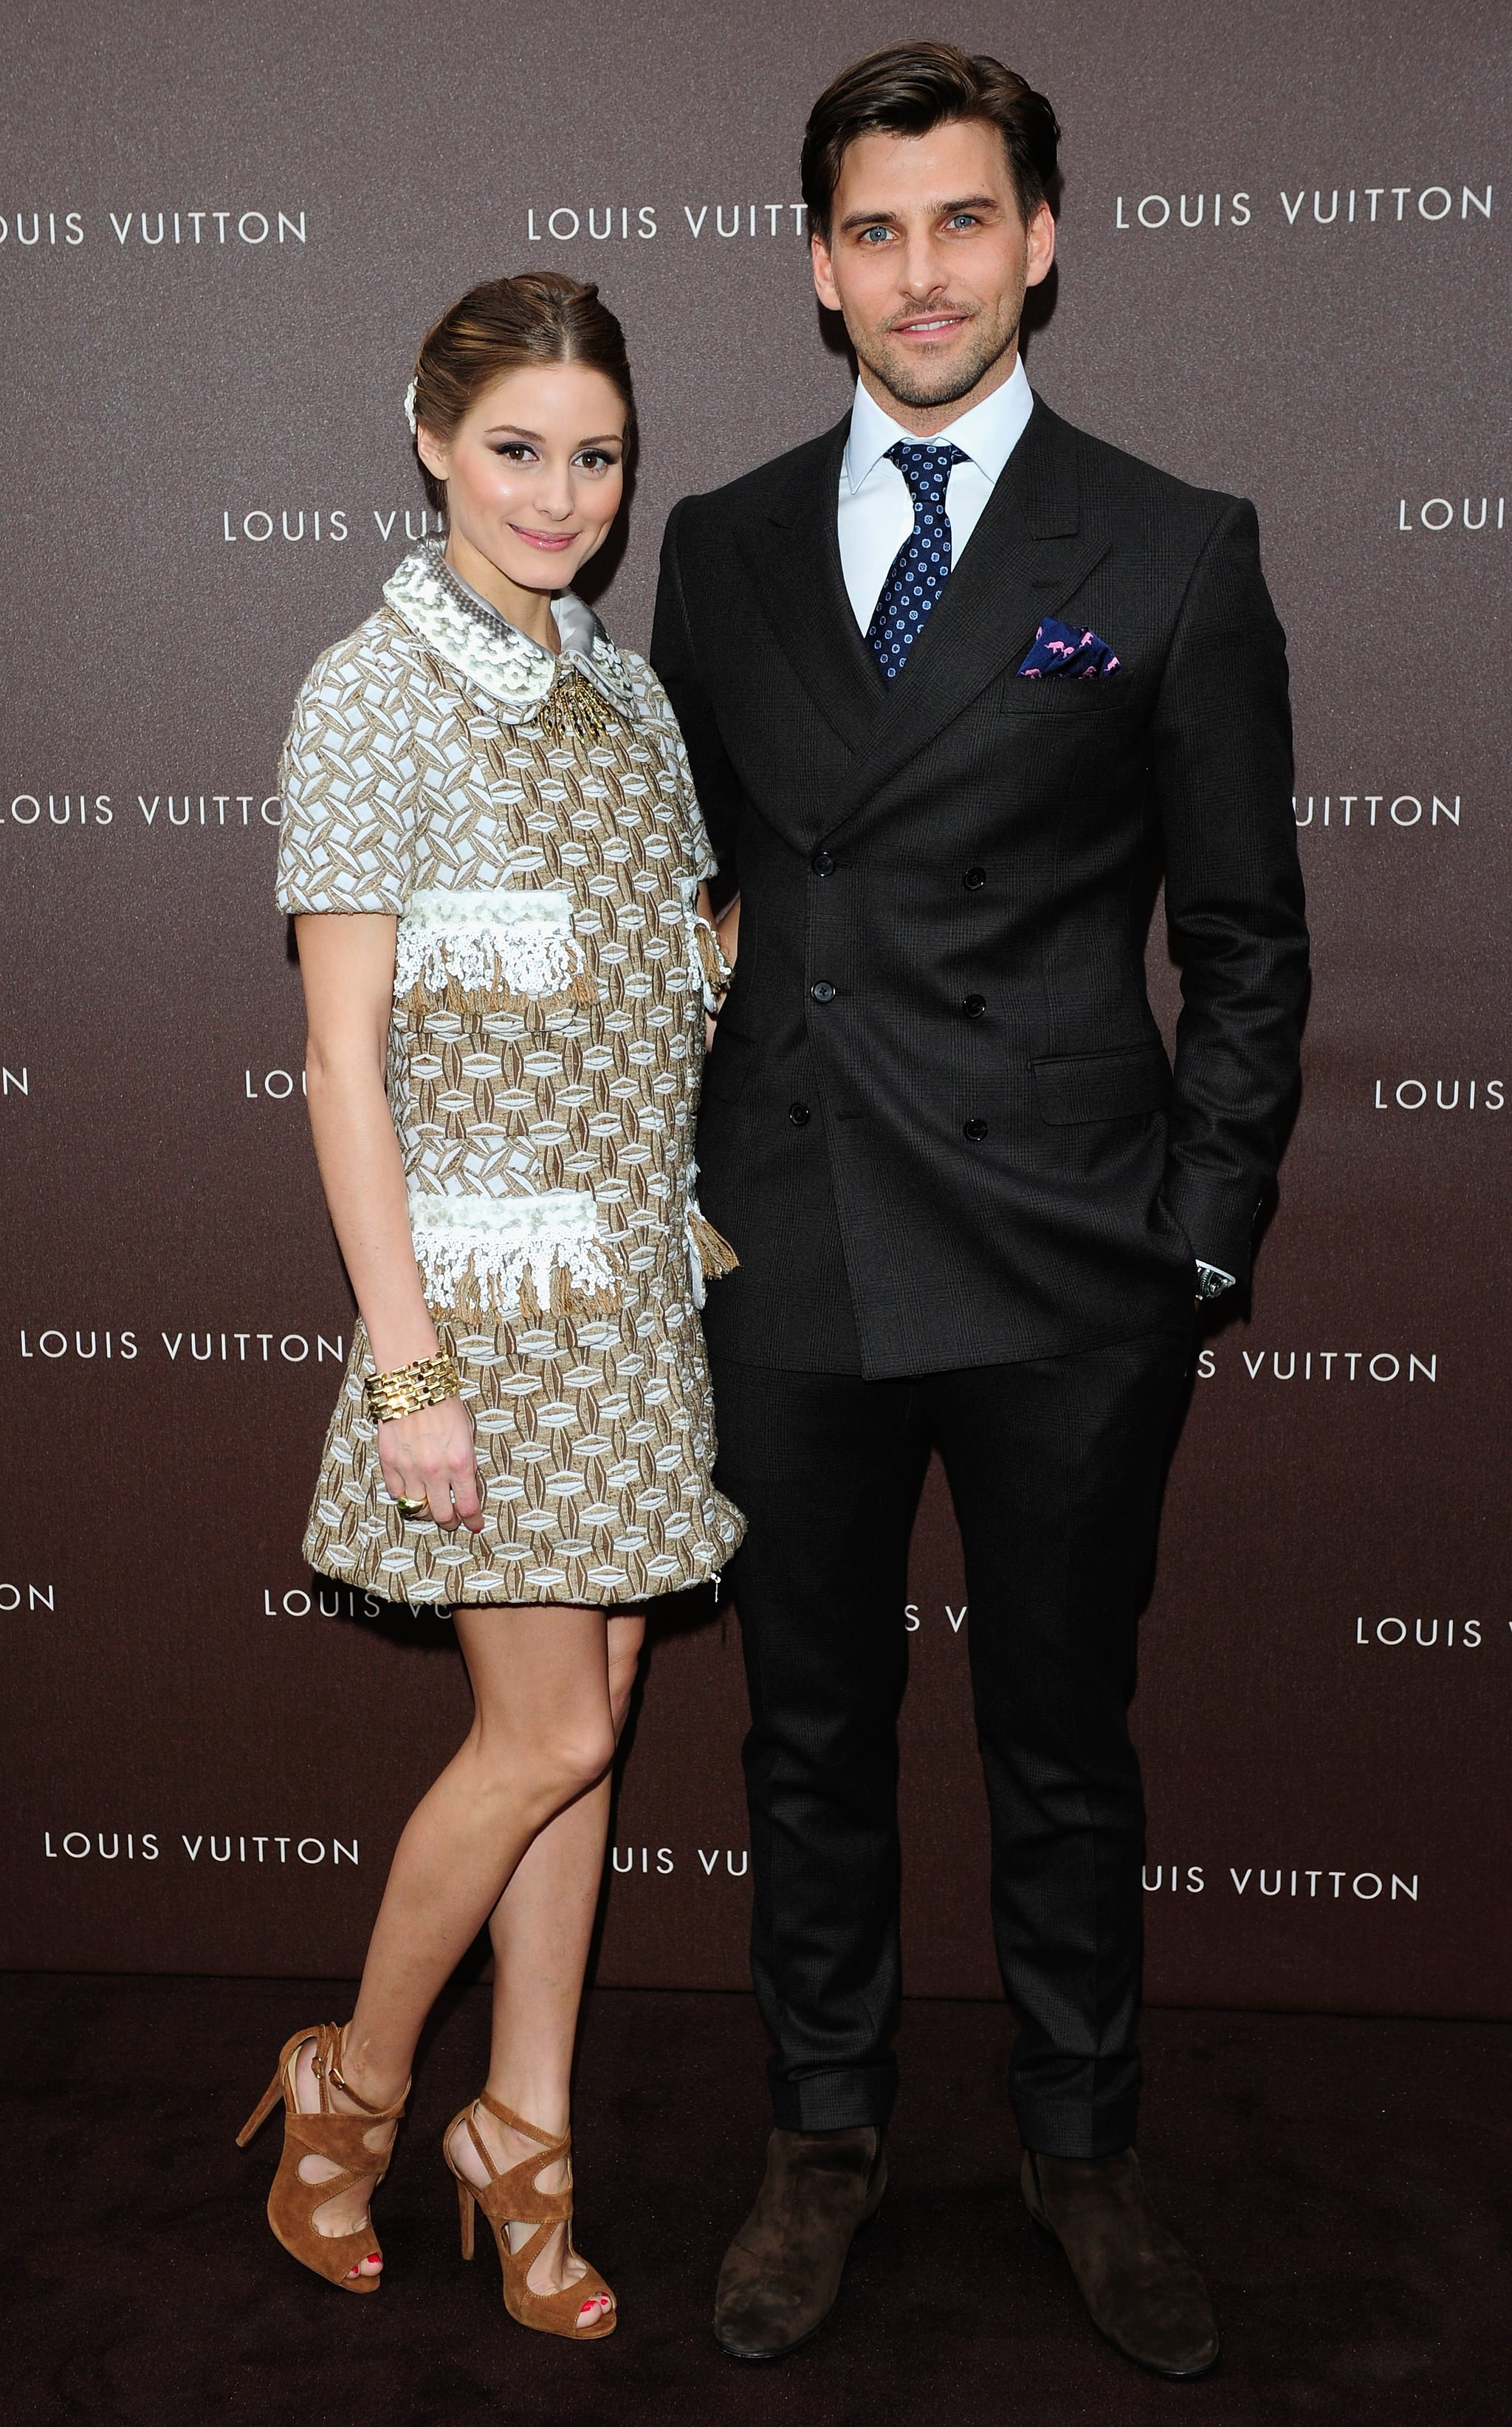 At the Louis Vuitton Maison opening in Munich, Olivia Palermo — pictured with fiancé Johannes Huebl — mixed high with low in a metallic collared Louis Vuitton Resort '13 dress and tan suede Zara sandals.